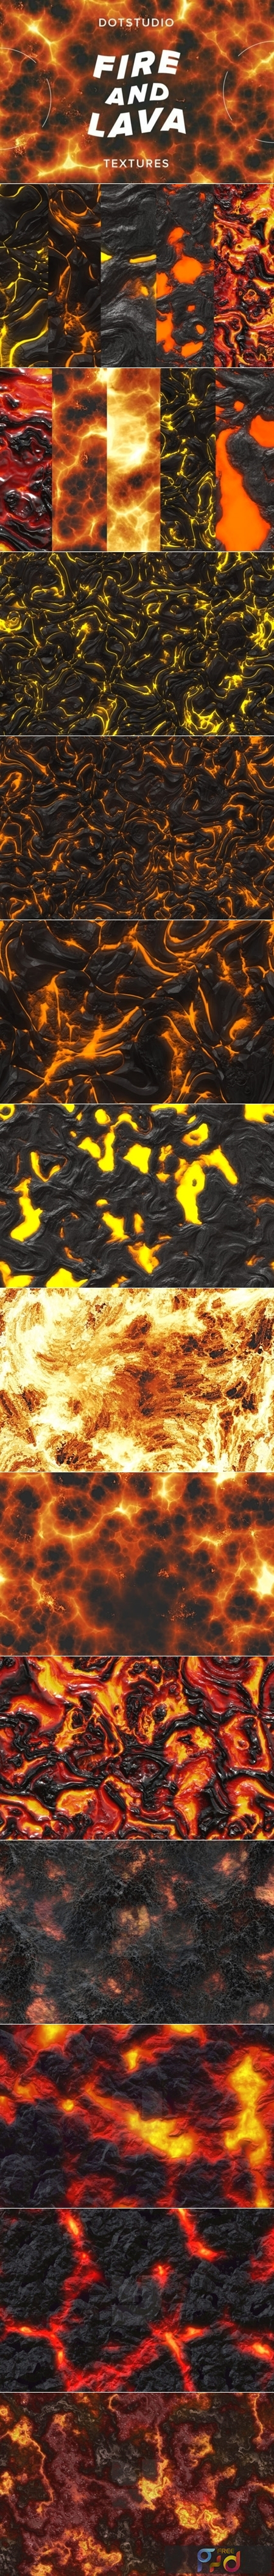 Fire and Lava Textures 3587268 1